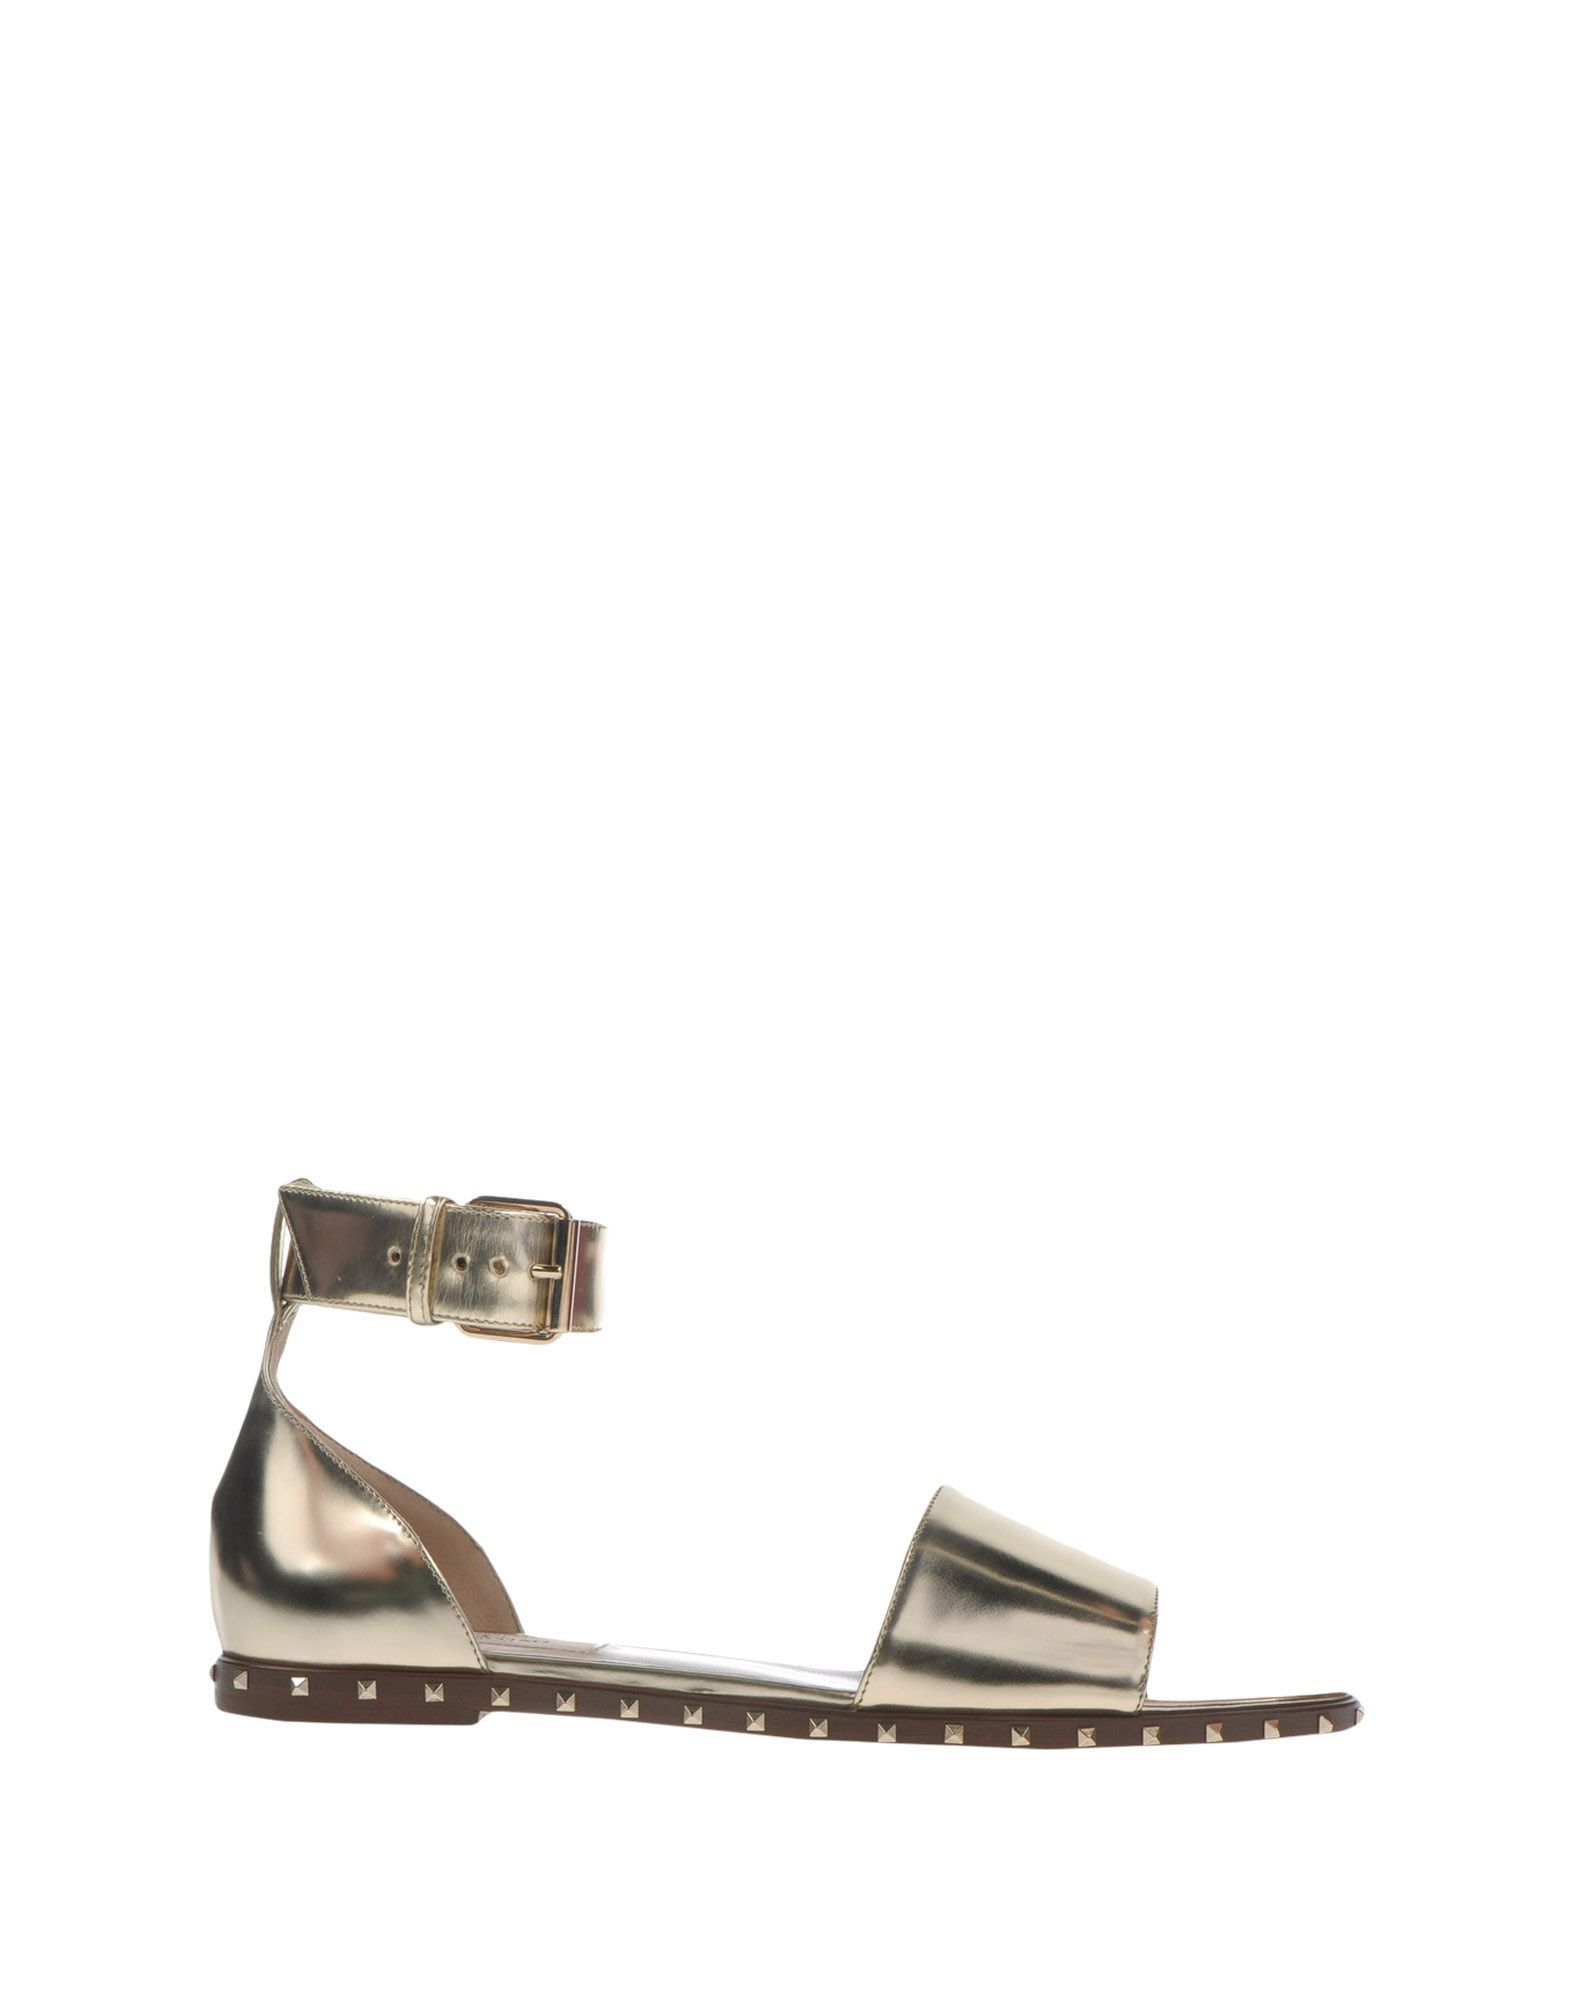 Valentino Garavani Platinum Leather Flat Sandals